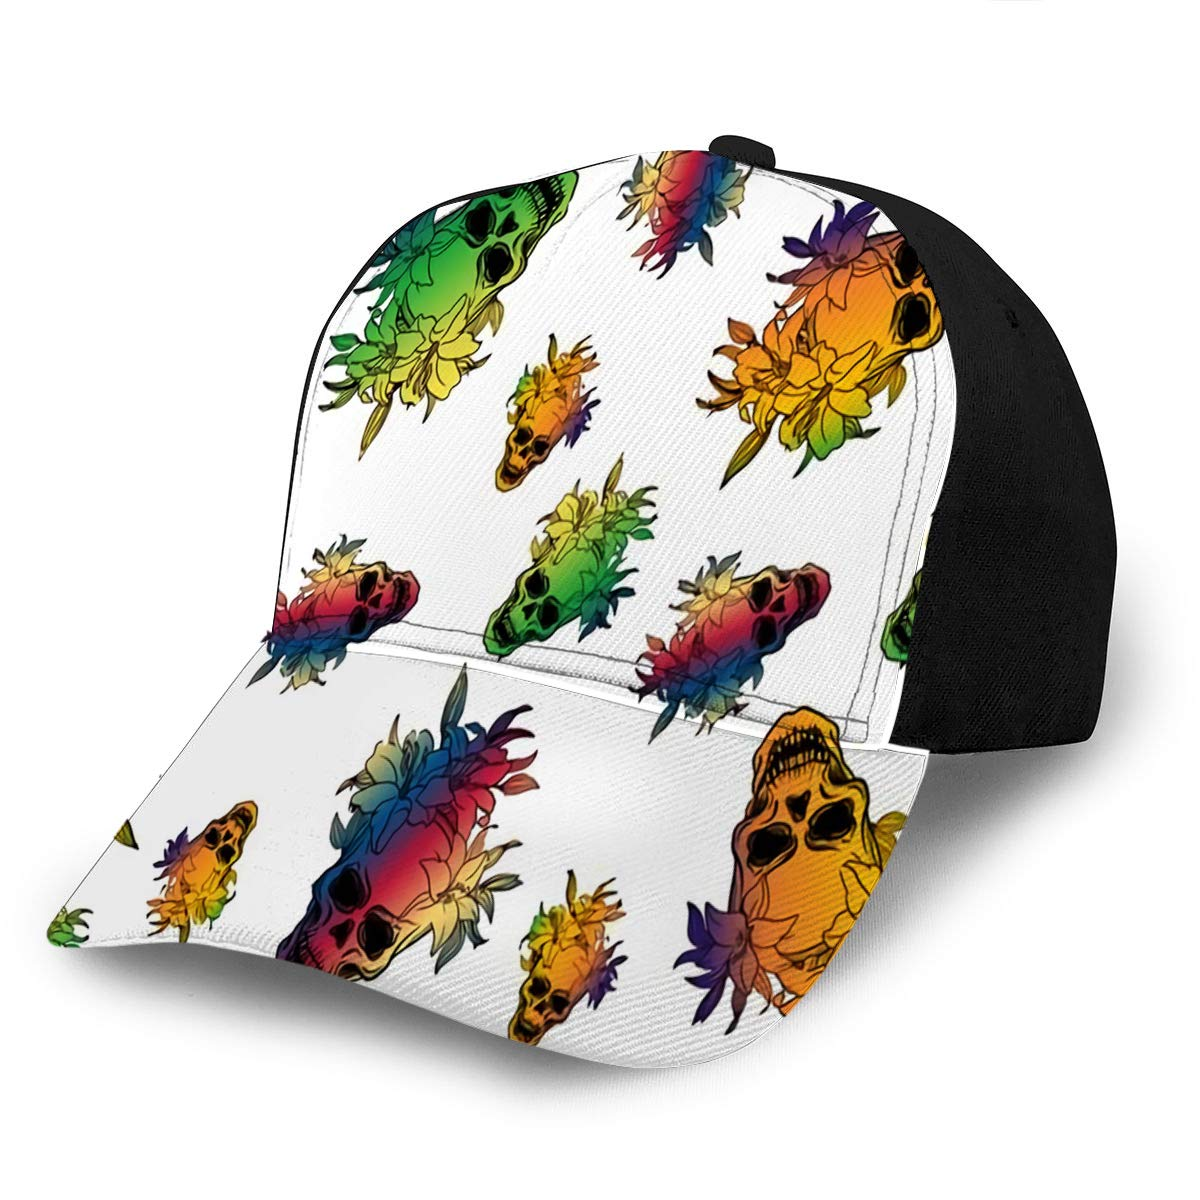 Baseball Cap Hats Adjustable Ute Colorful with Skulls and Lily Flowers Fashion